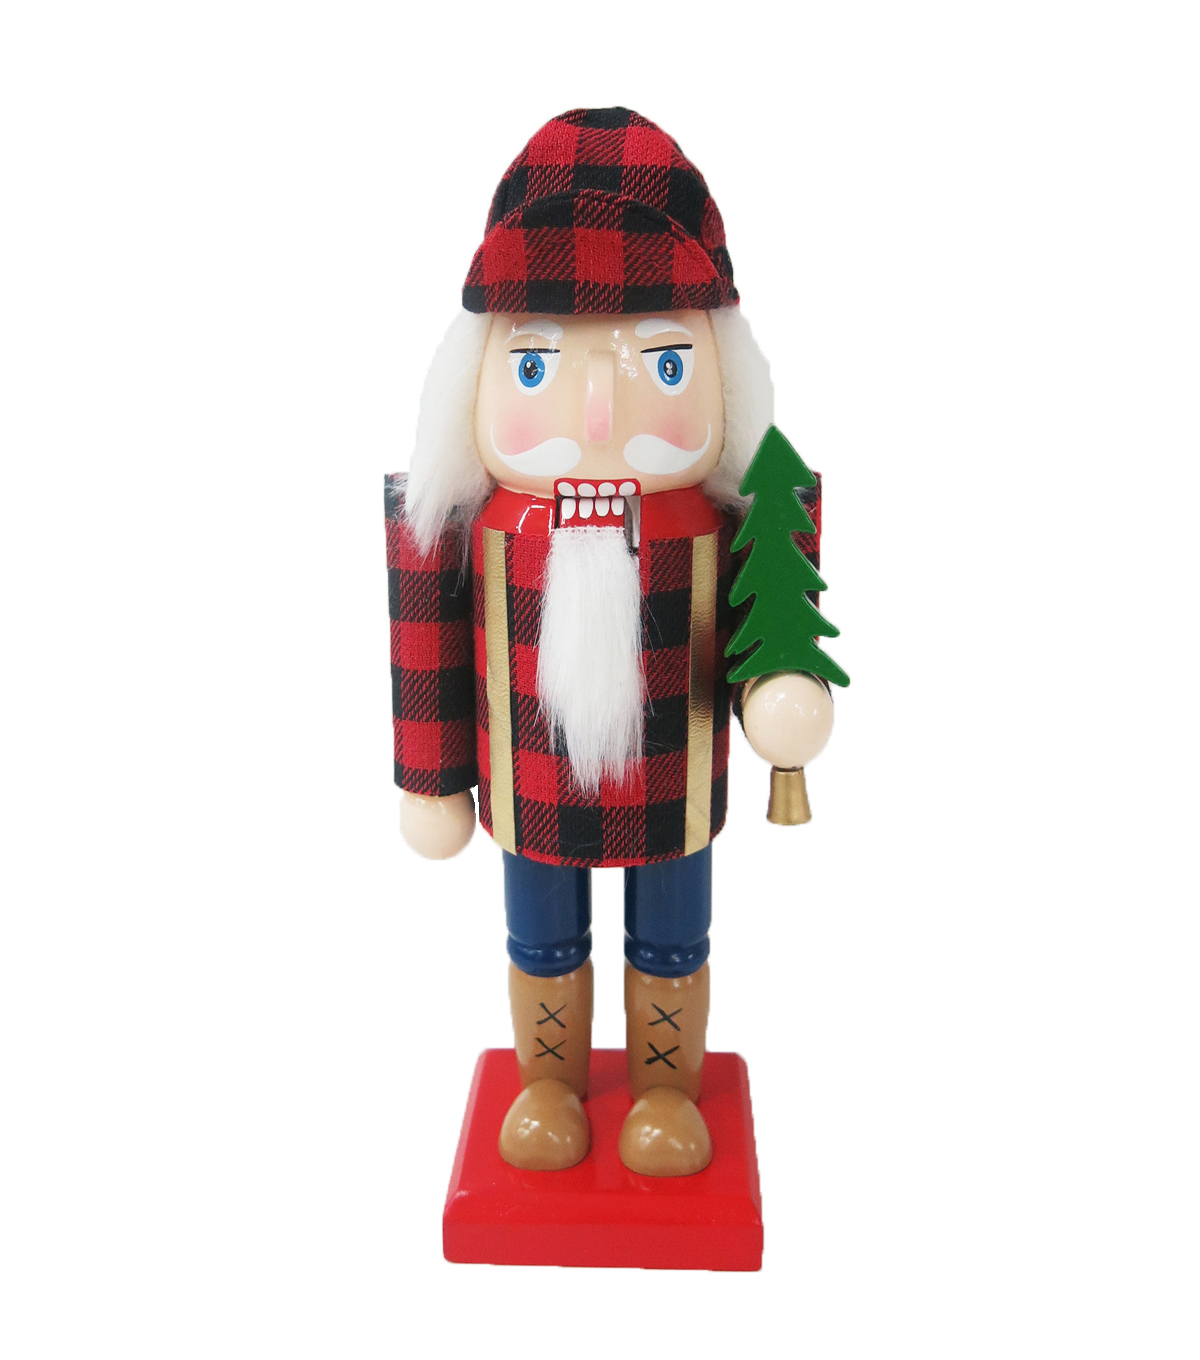 Maker\u0027s Holiday Christmas 9.25\u0027\u0027 Nutcracker-Buffalo Plaid